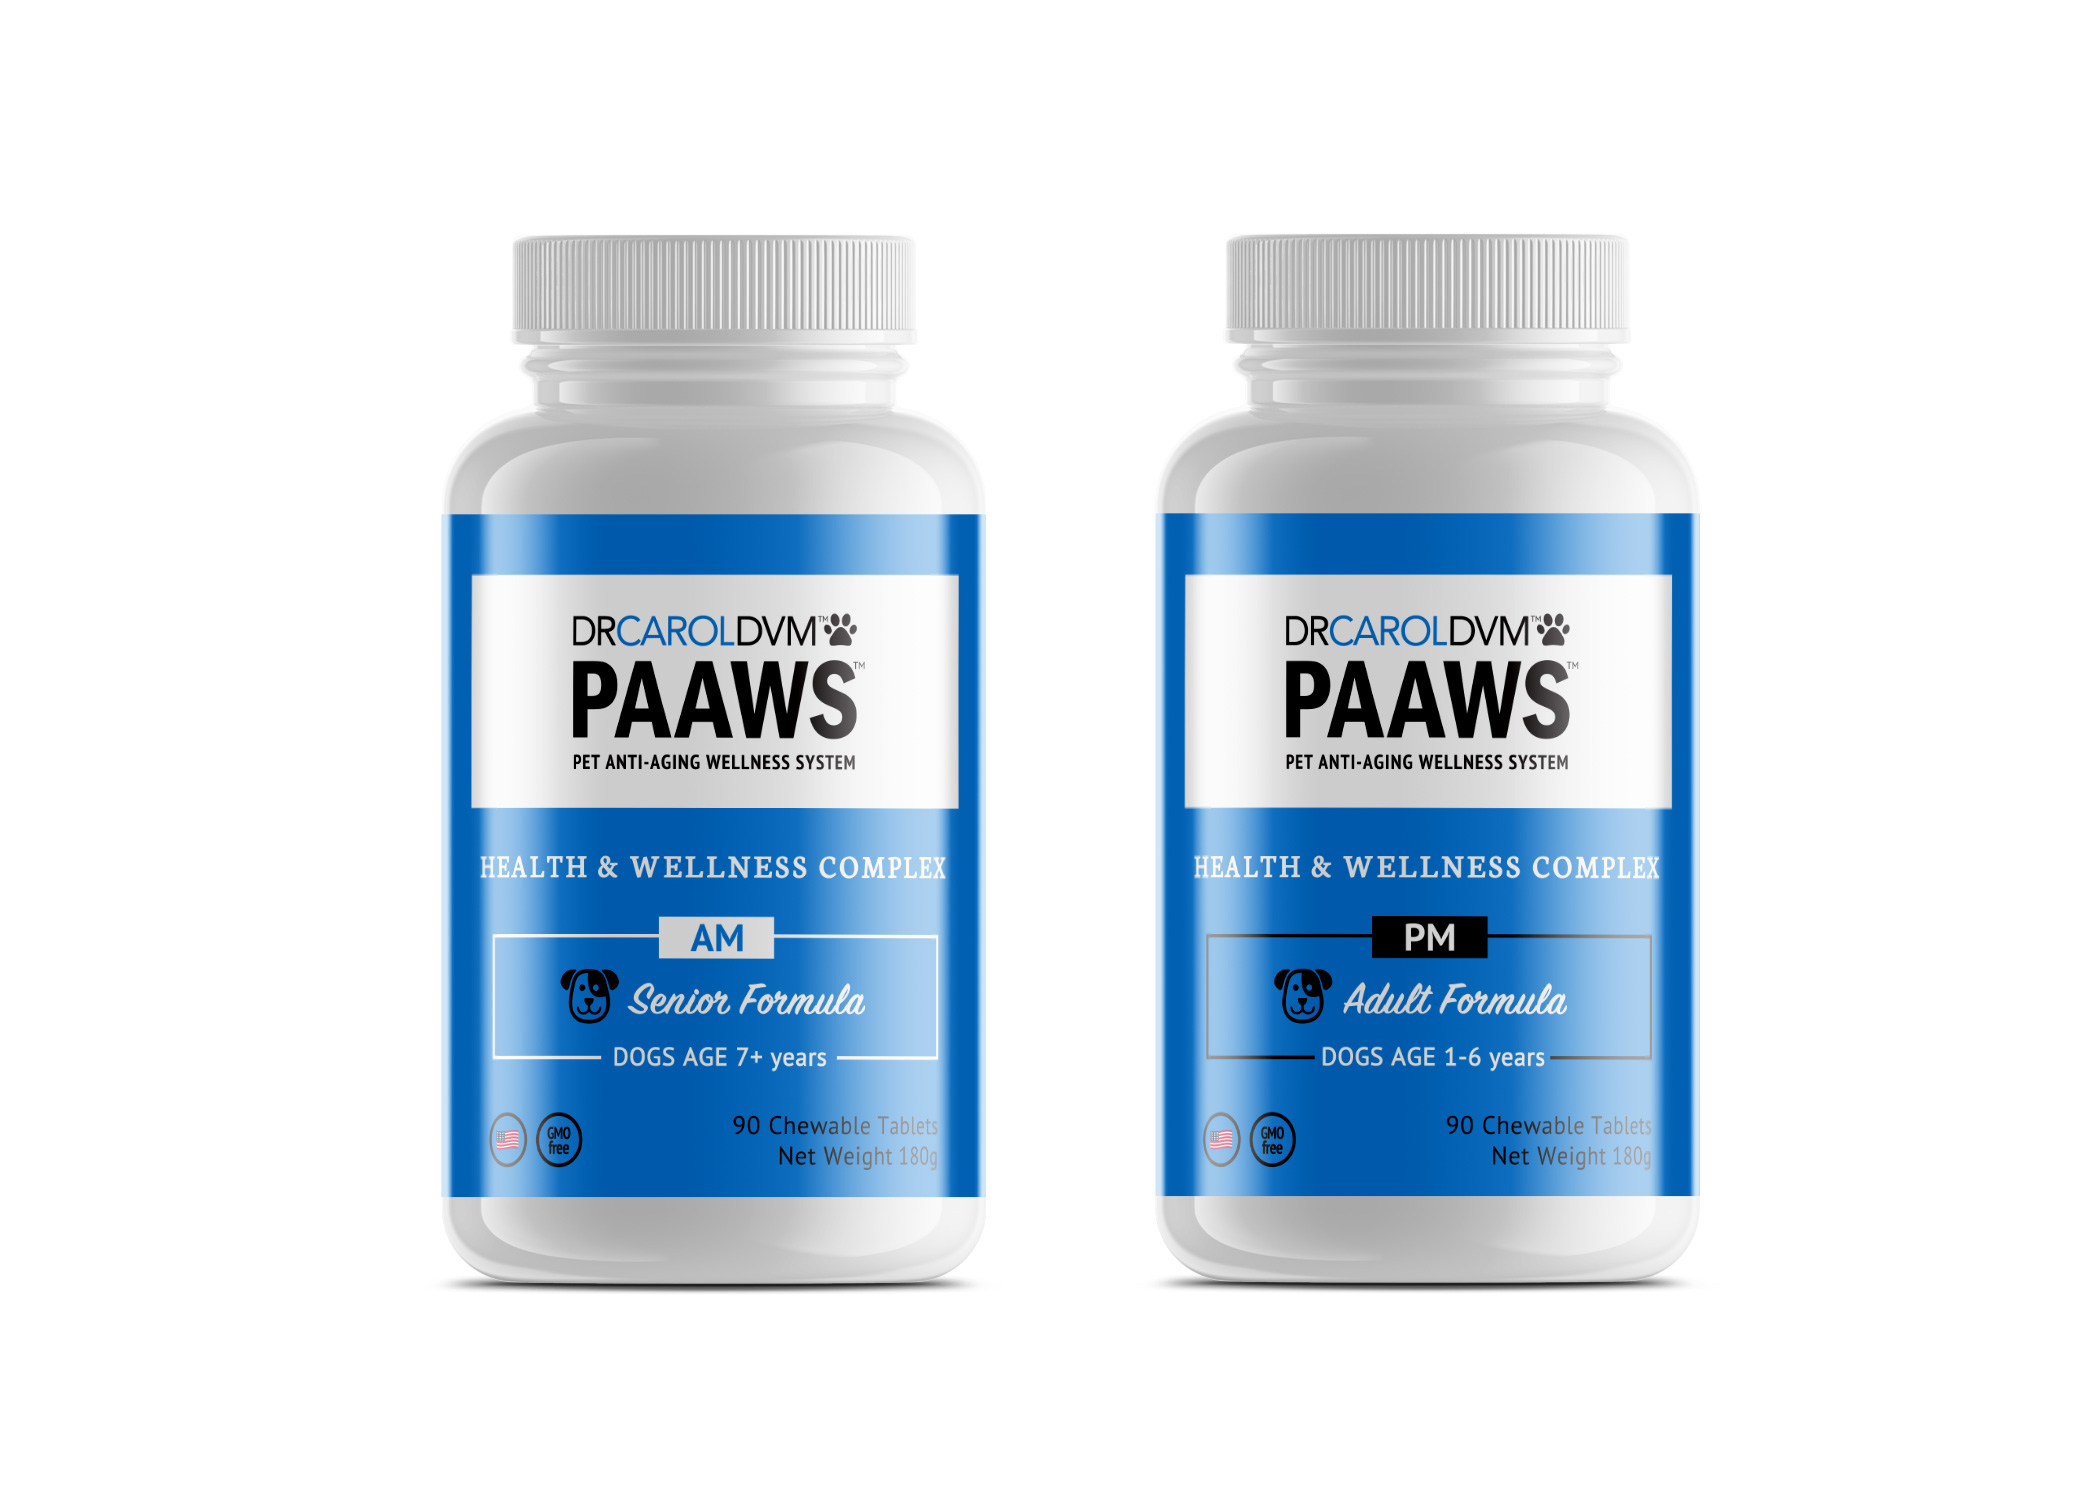 Dr. Carol DVM PAAWS pet product labels supplement design in blue, black and white elements against white background.